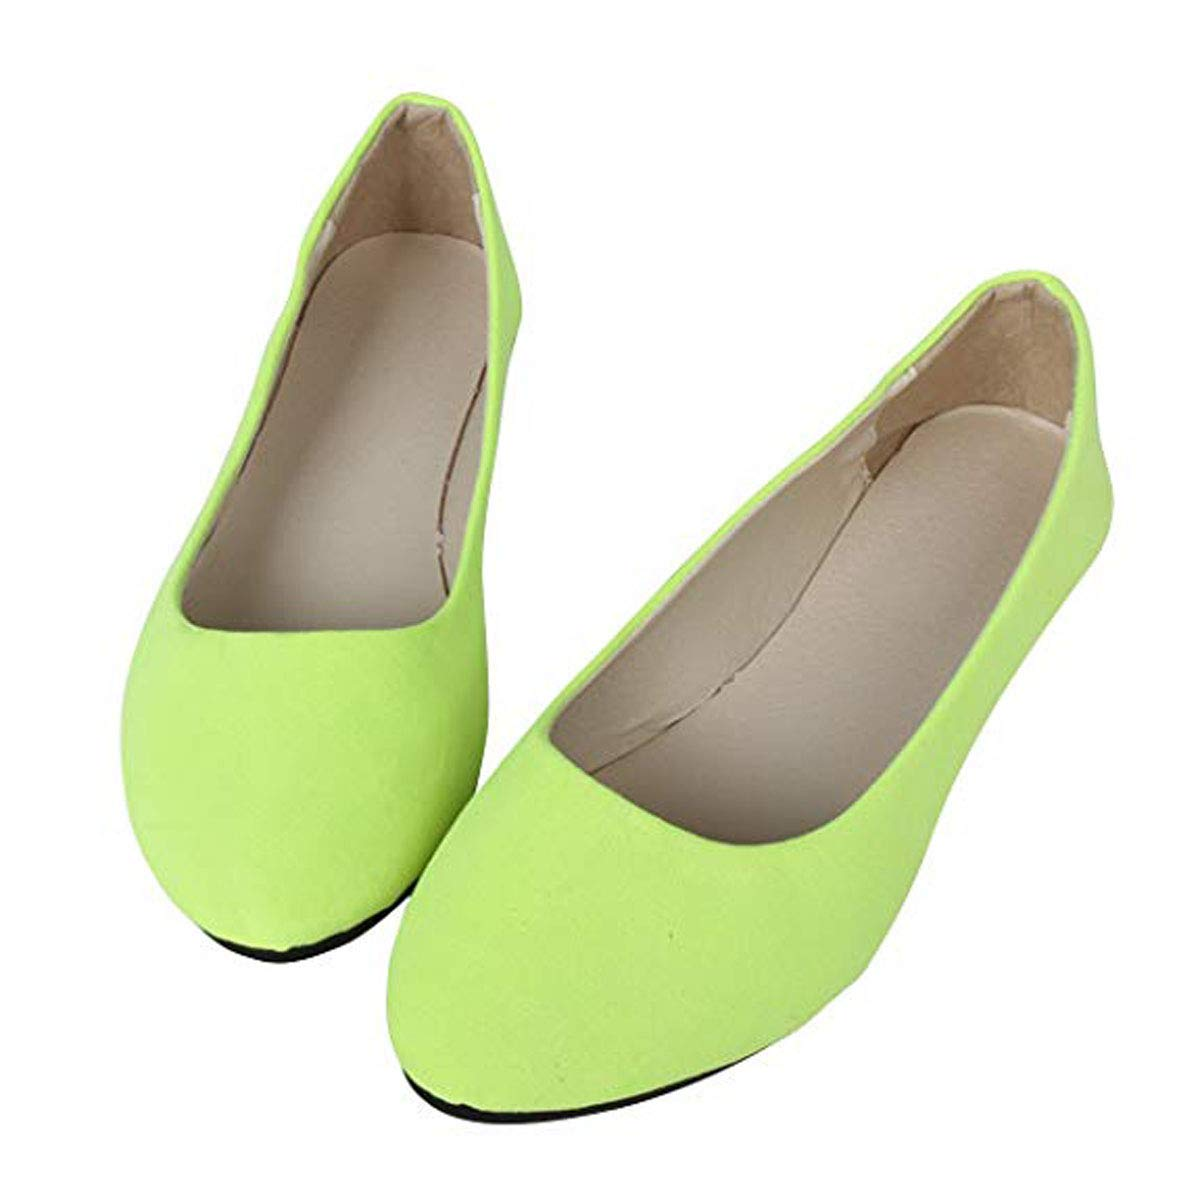 DeerYou Womens Suede Ballet Flats Pointy Toe Classic Loafers Solid Comfort Dress Walking Shoes